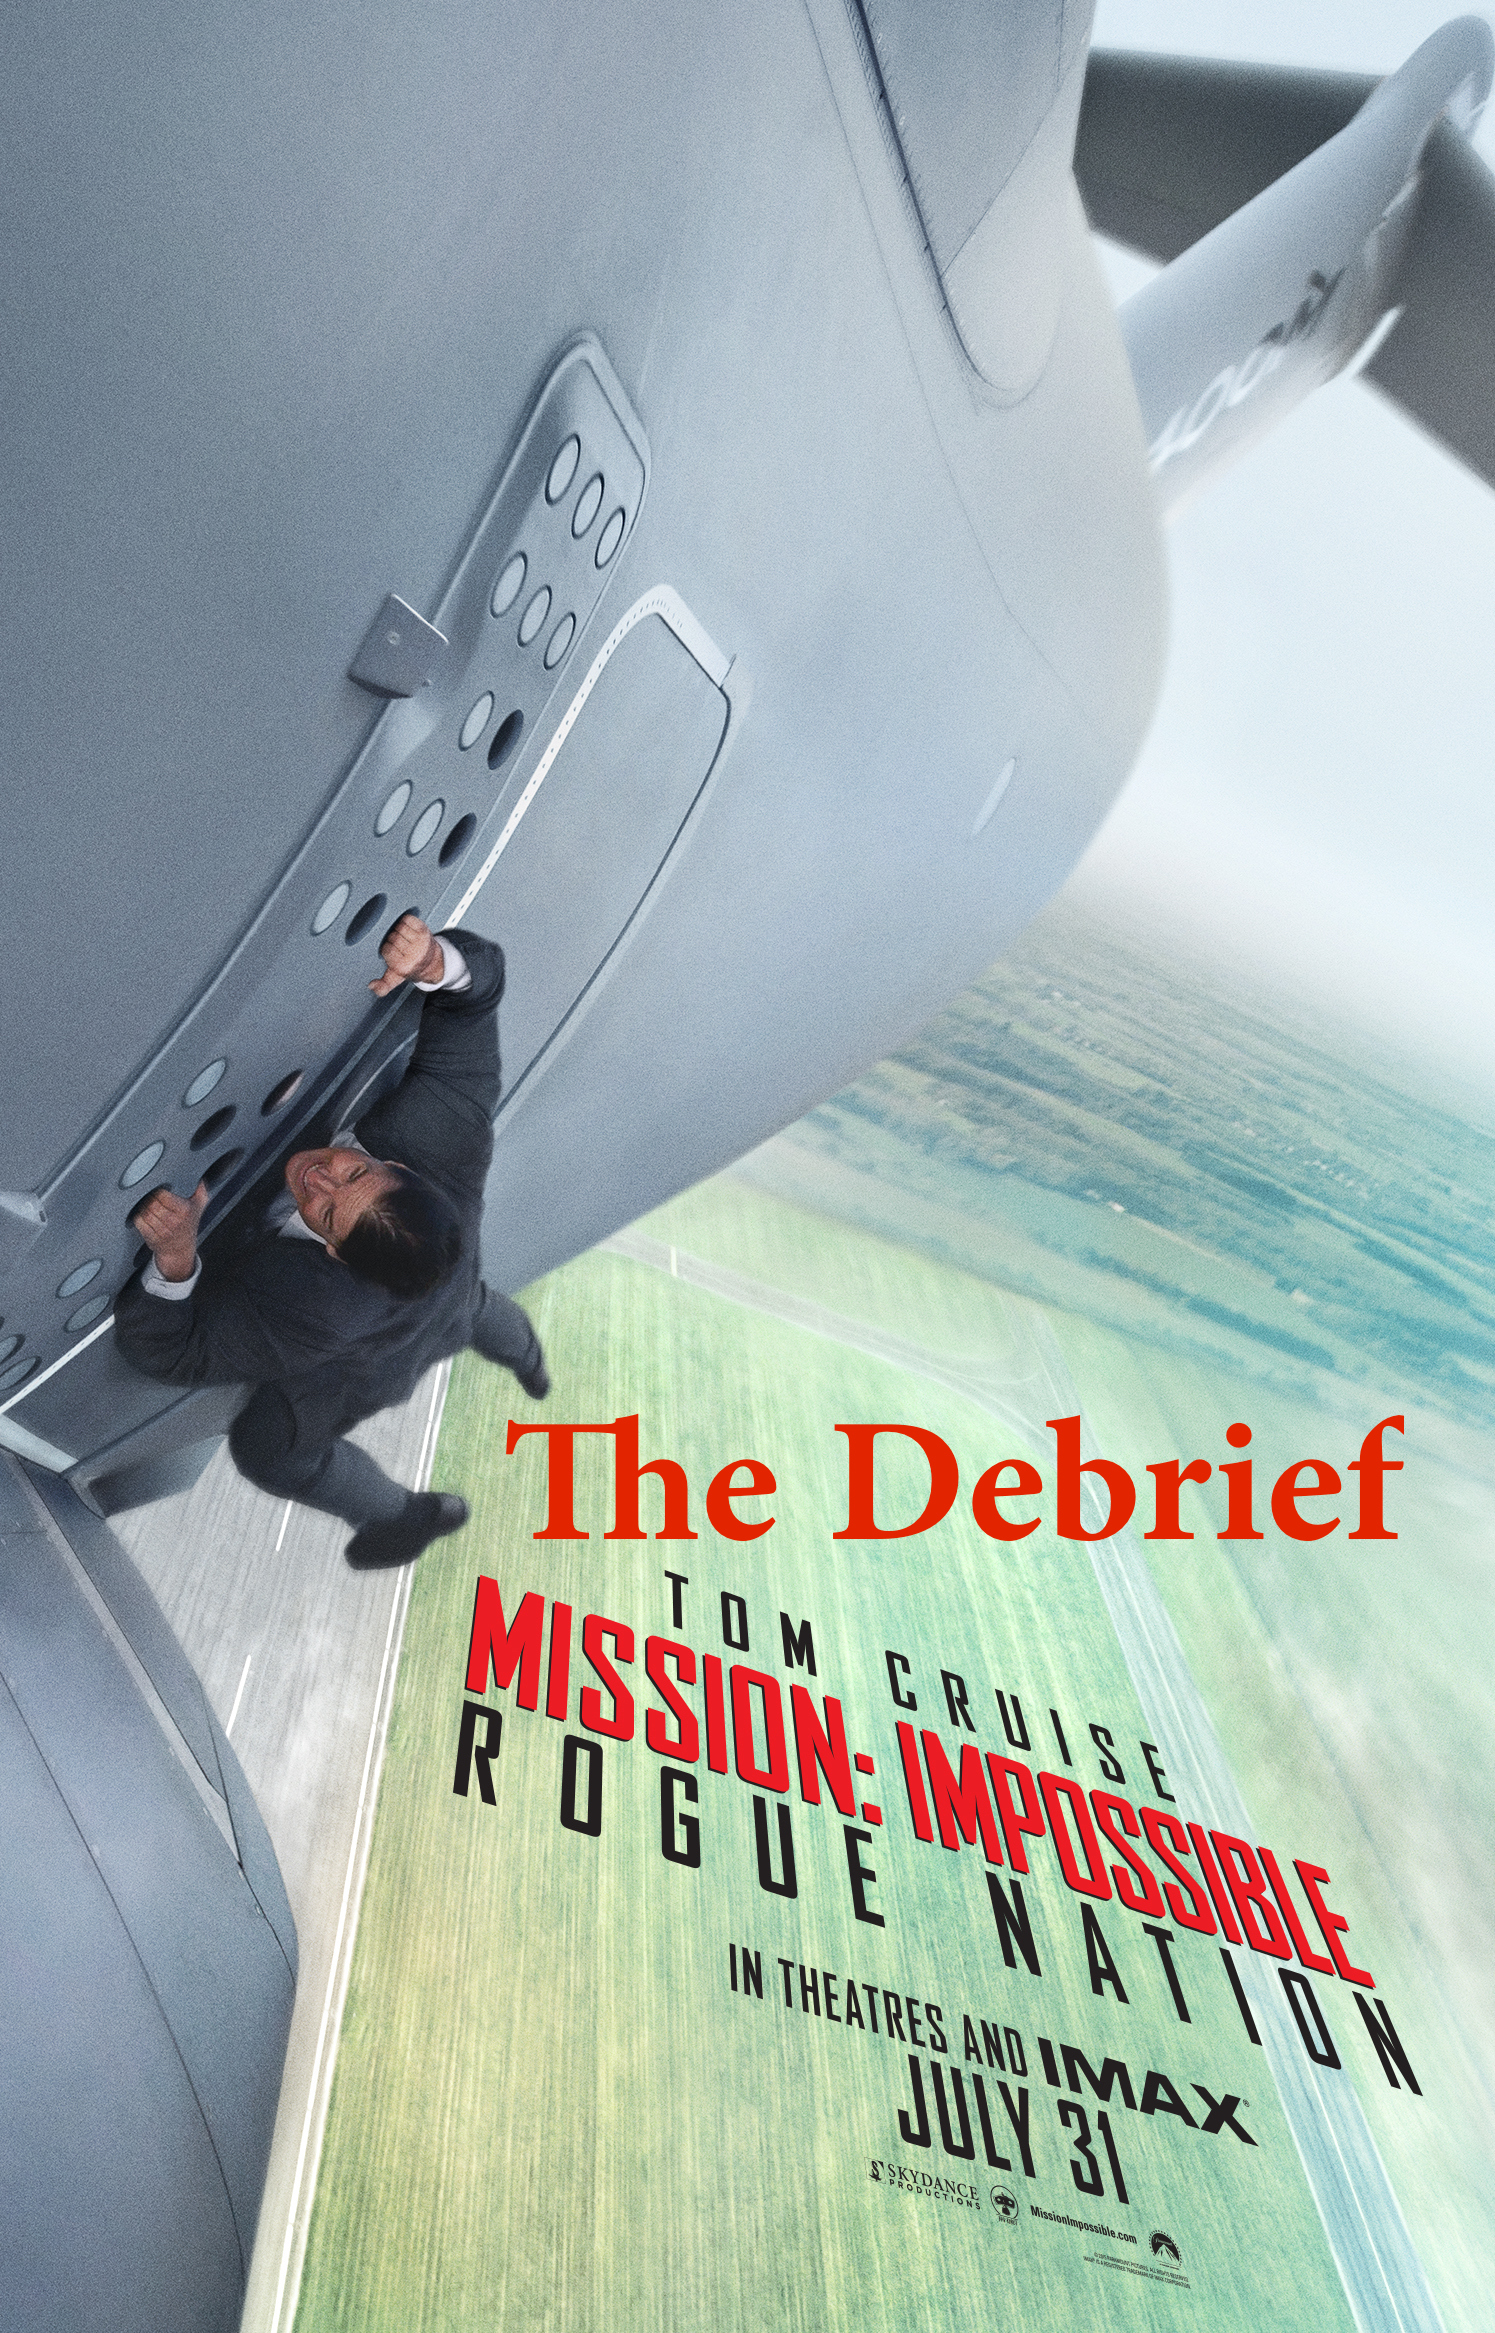 Mission-Impossible-Rogue-Nation-poster.jpg